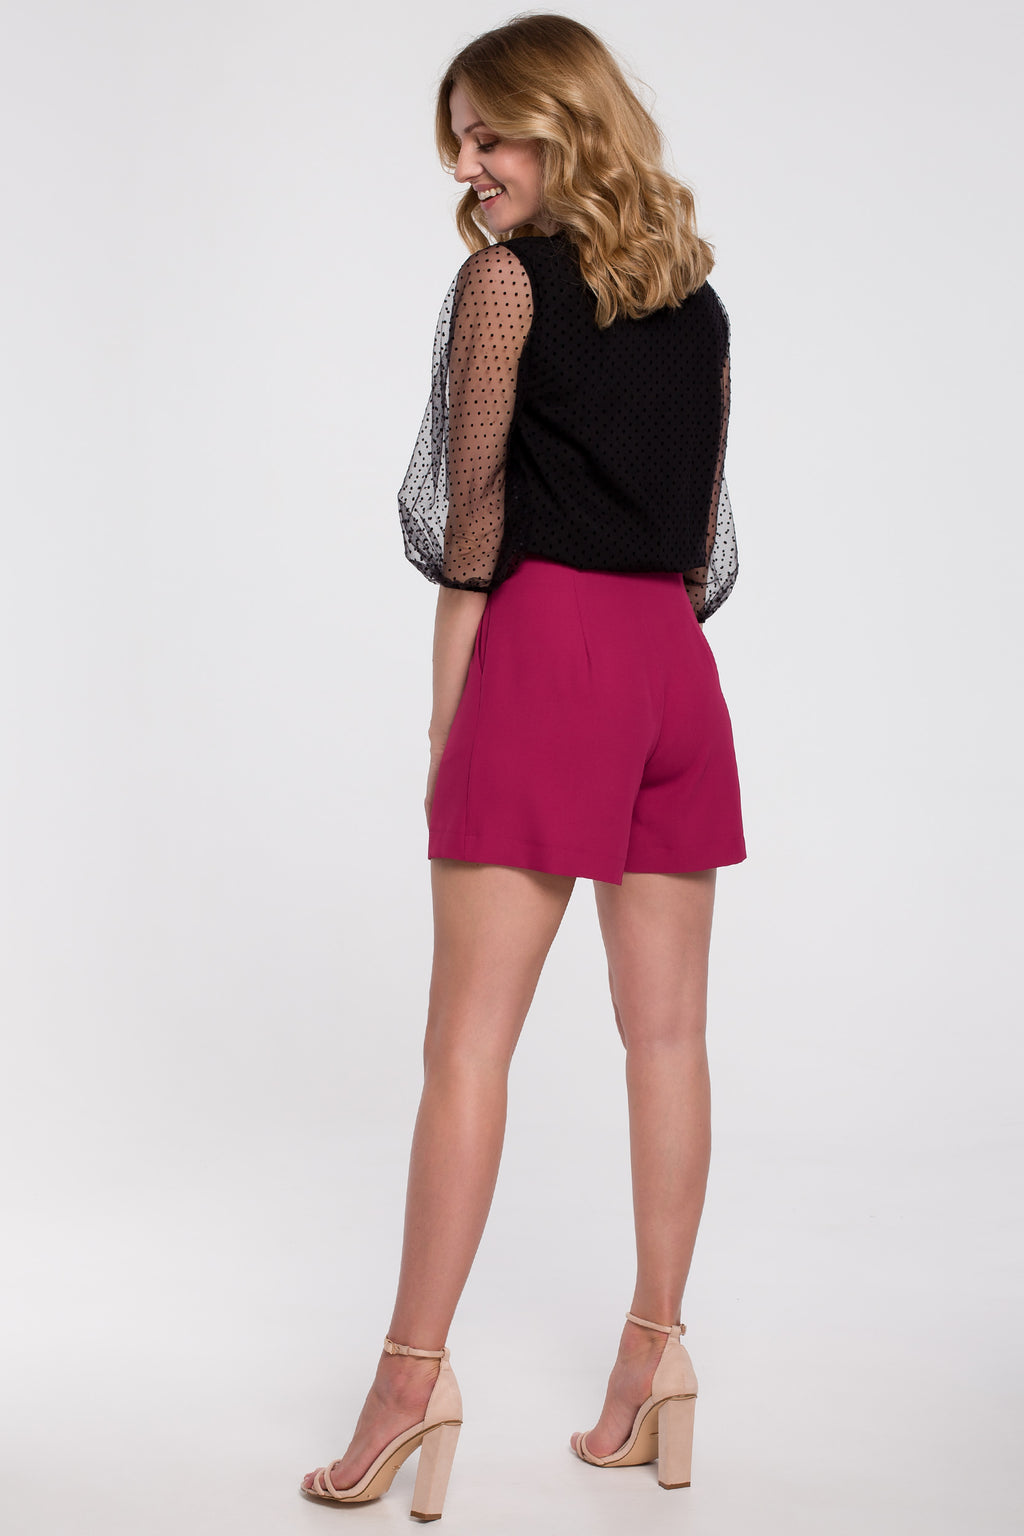 Dark Pink Relaxed Shorts With Front Pleats - So Chic Boutique